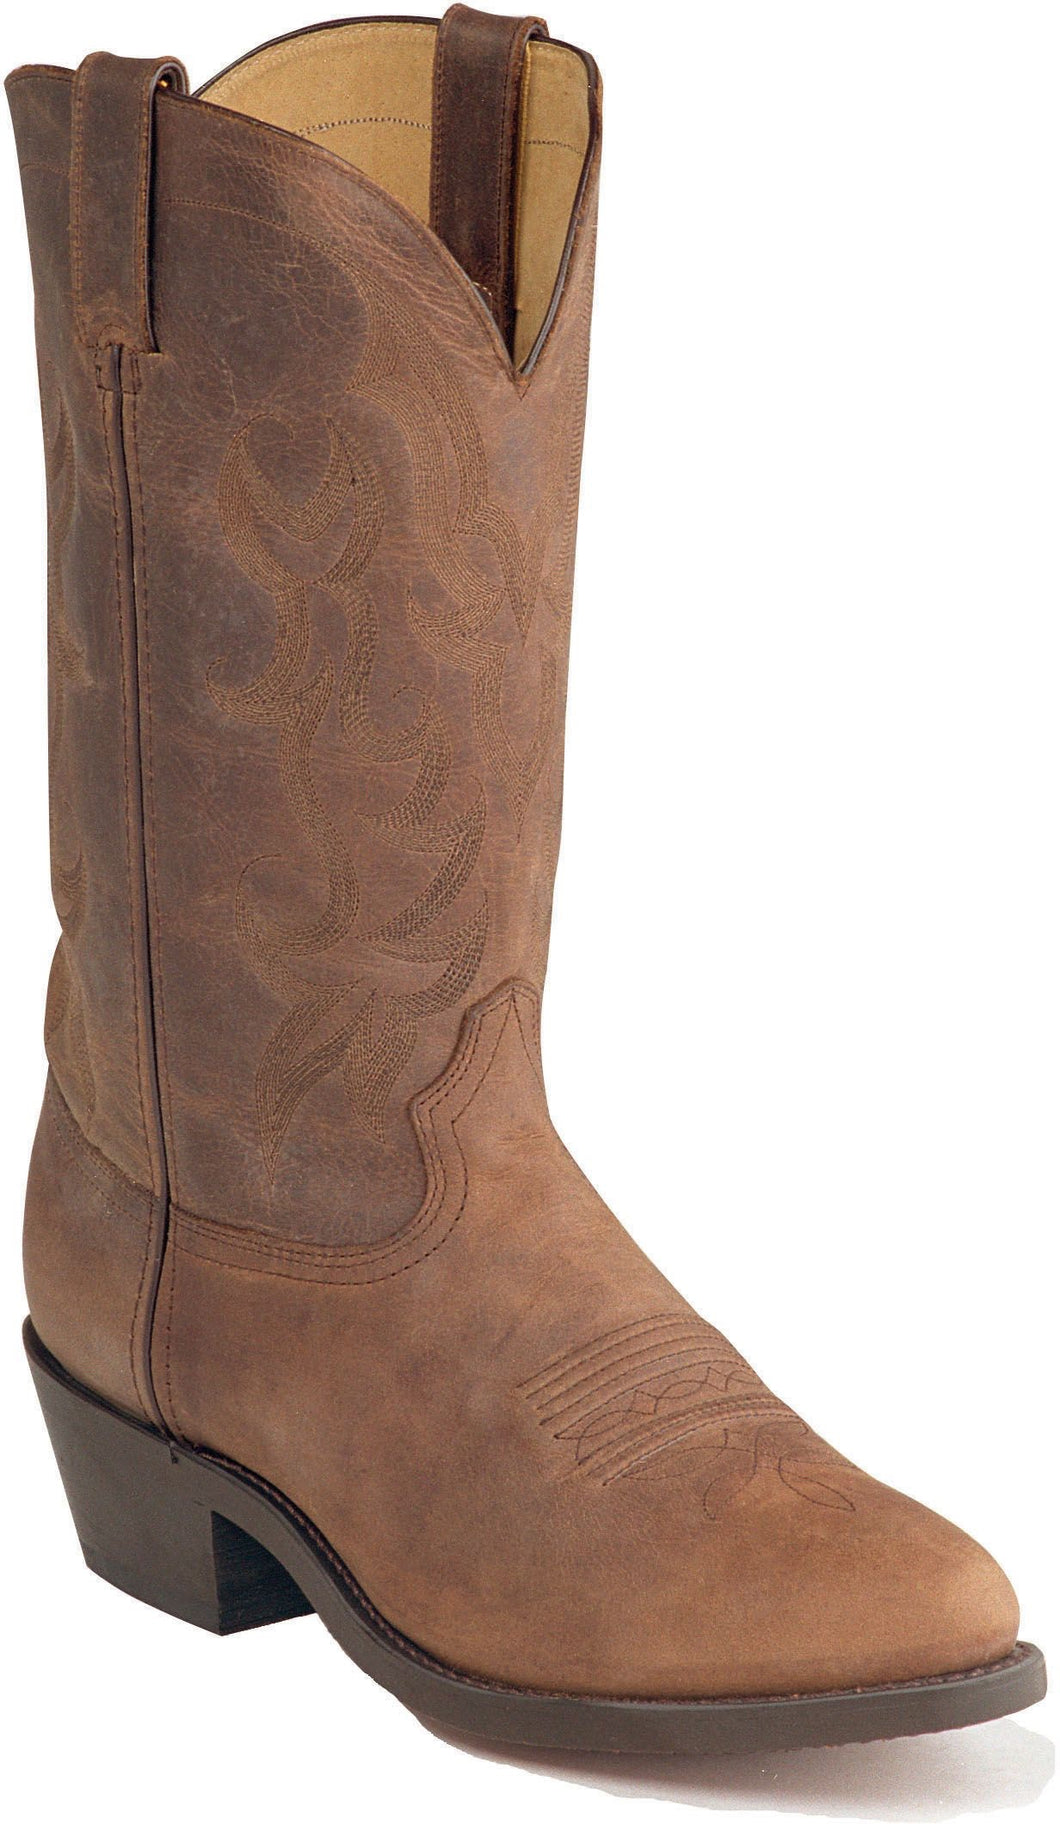 Men's Durango Soft Tan Leather Boot